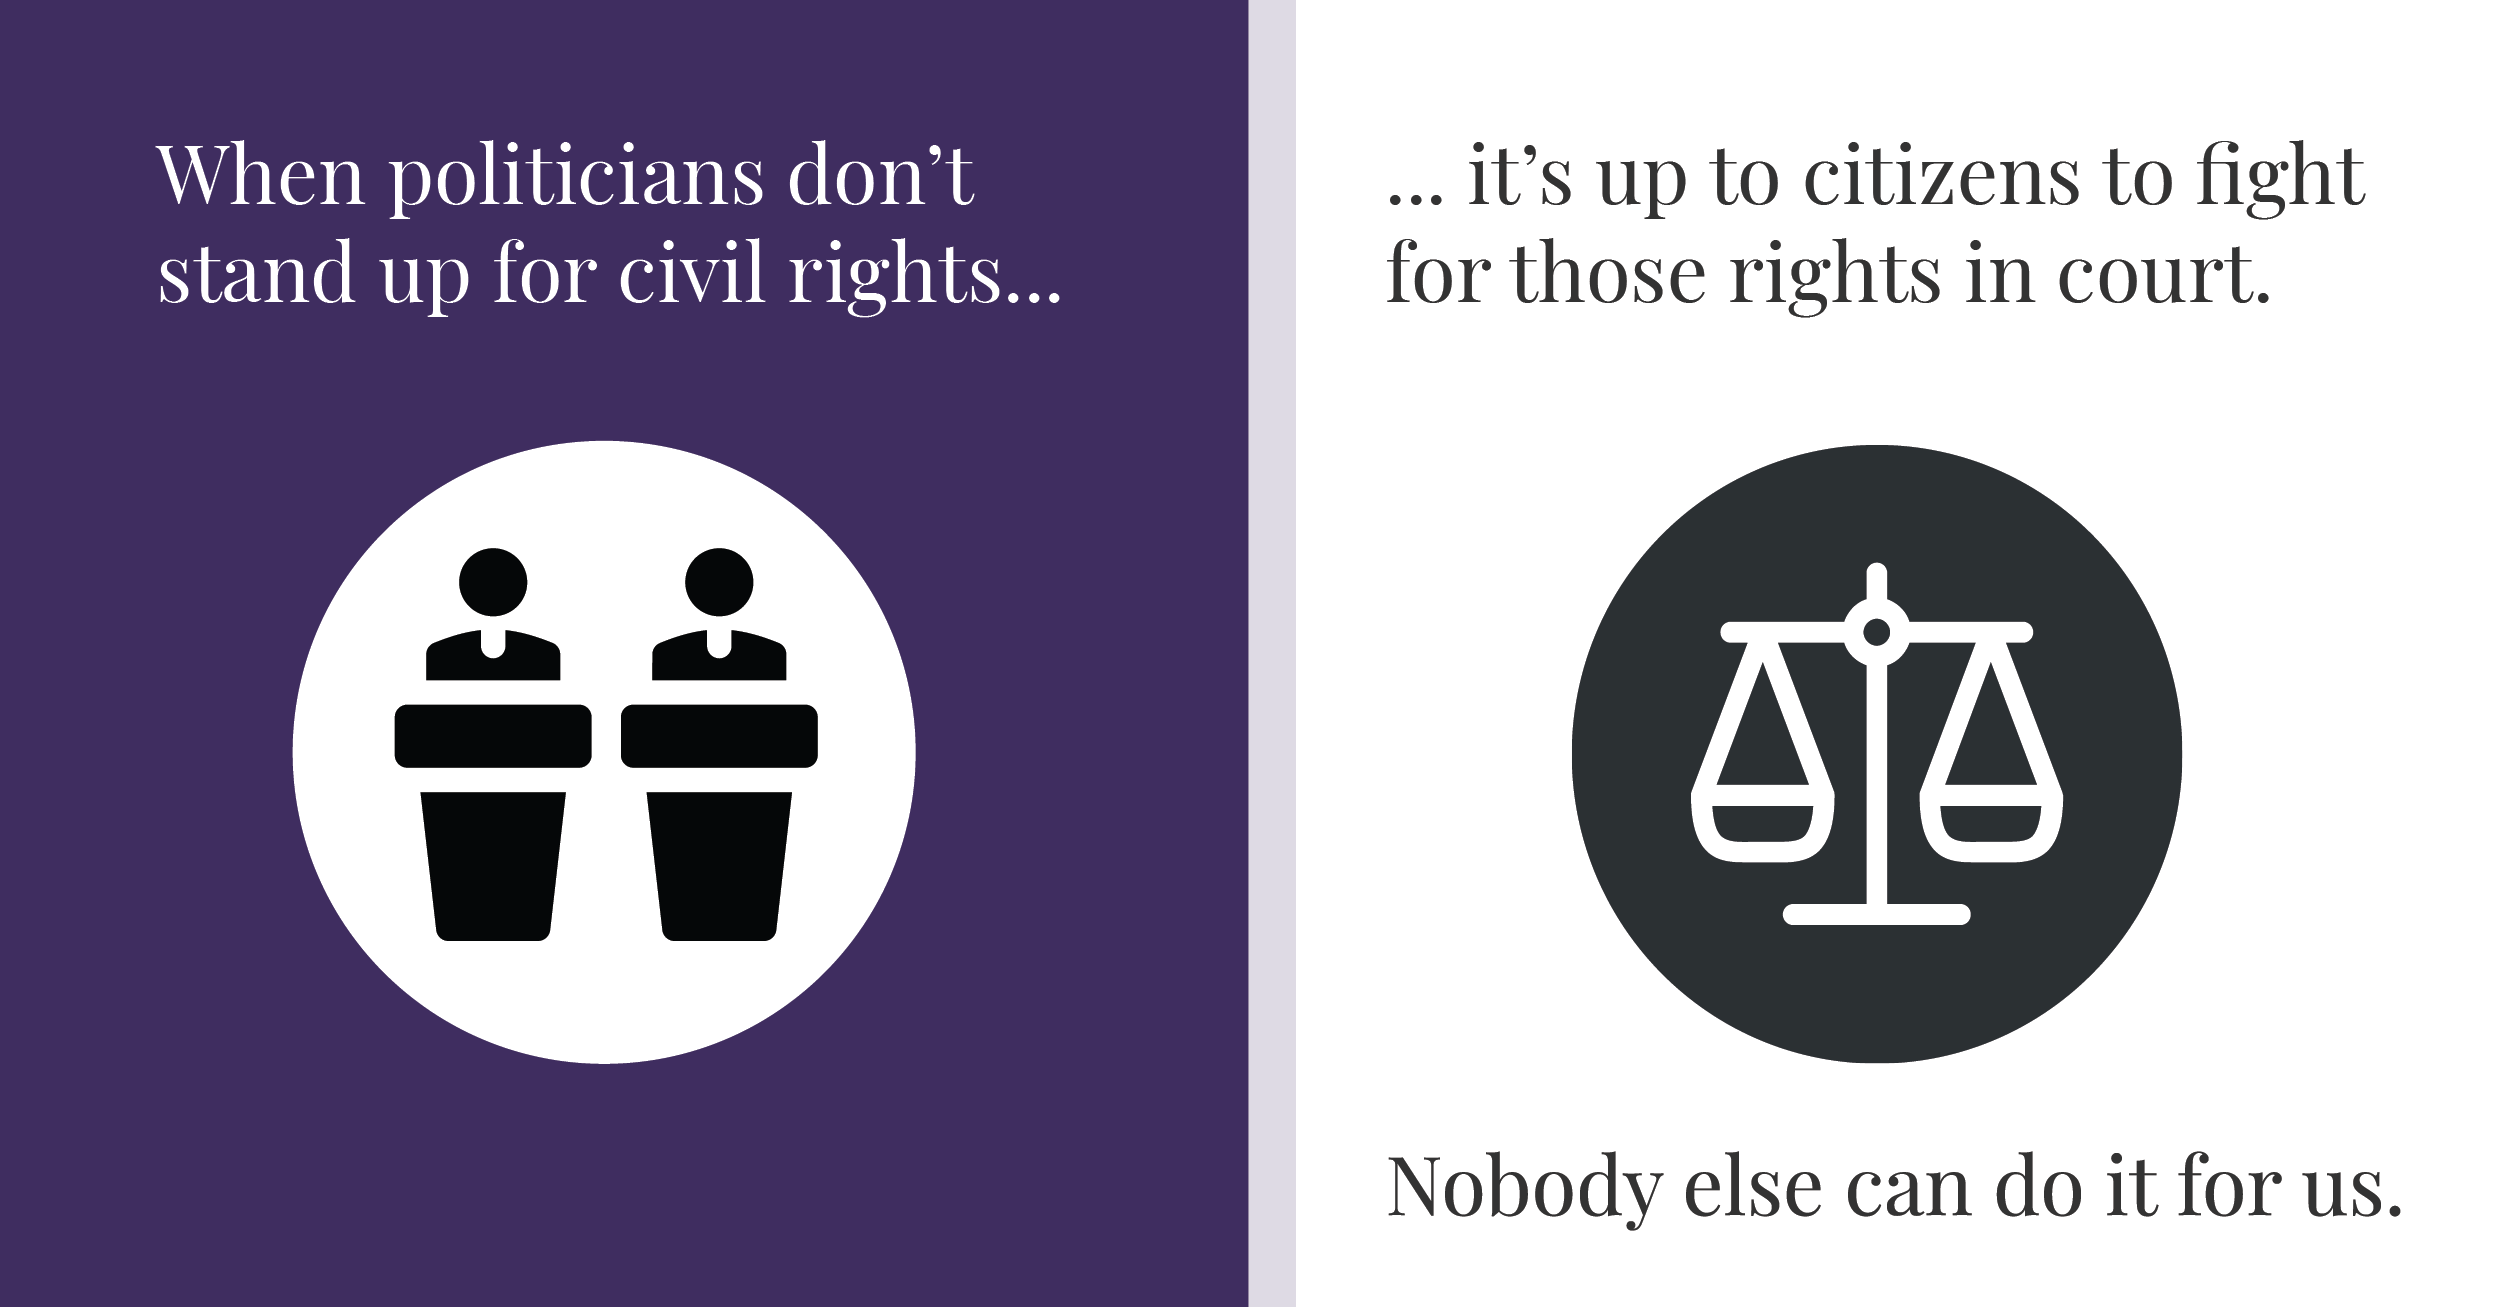 When politicians don't stand up for our civil rights, it's up to citizens to fight for those rights in court. Nobody else can do it for us.